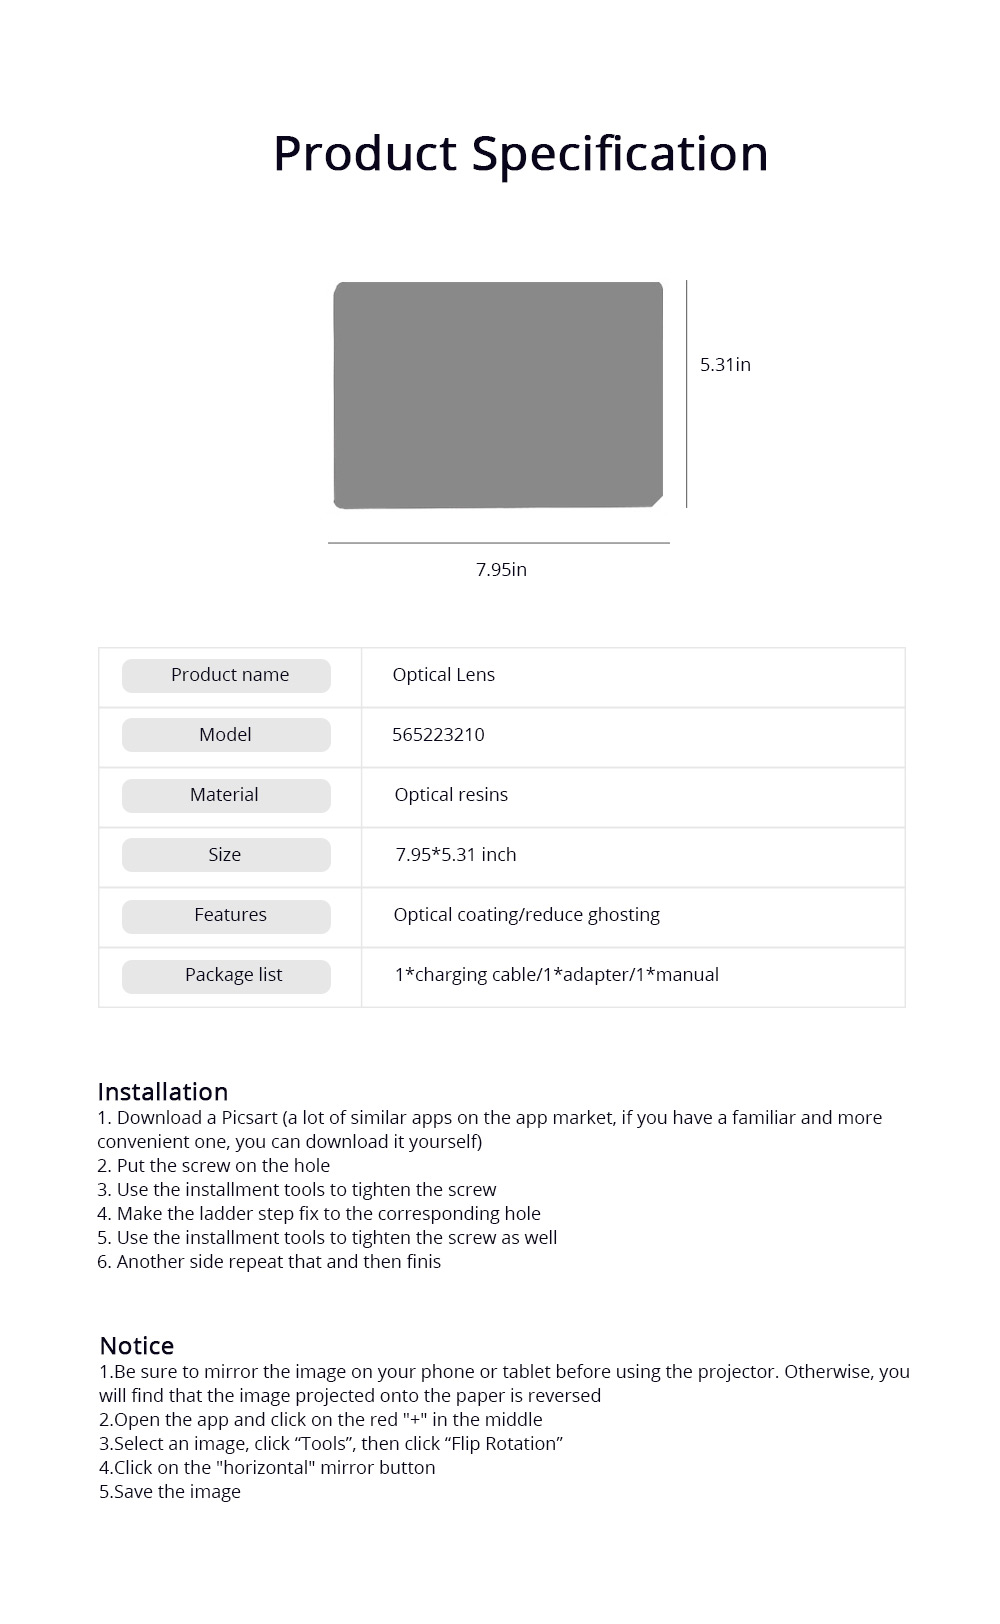 Optical Drawing Board Adjustable Brightness Portable Sketching Template Tool Image Projection Board for Artists Beginners 7